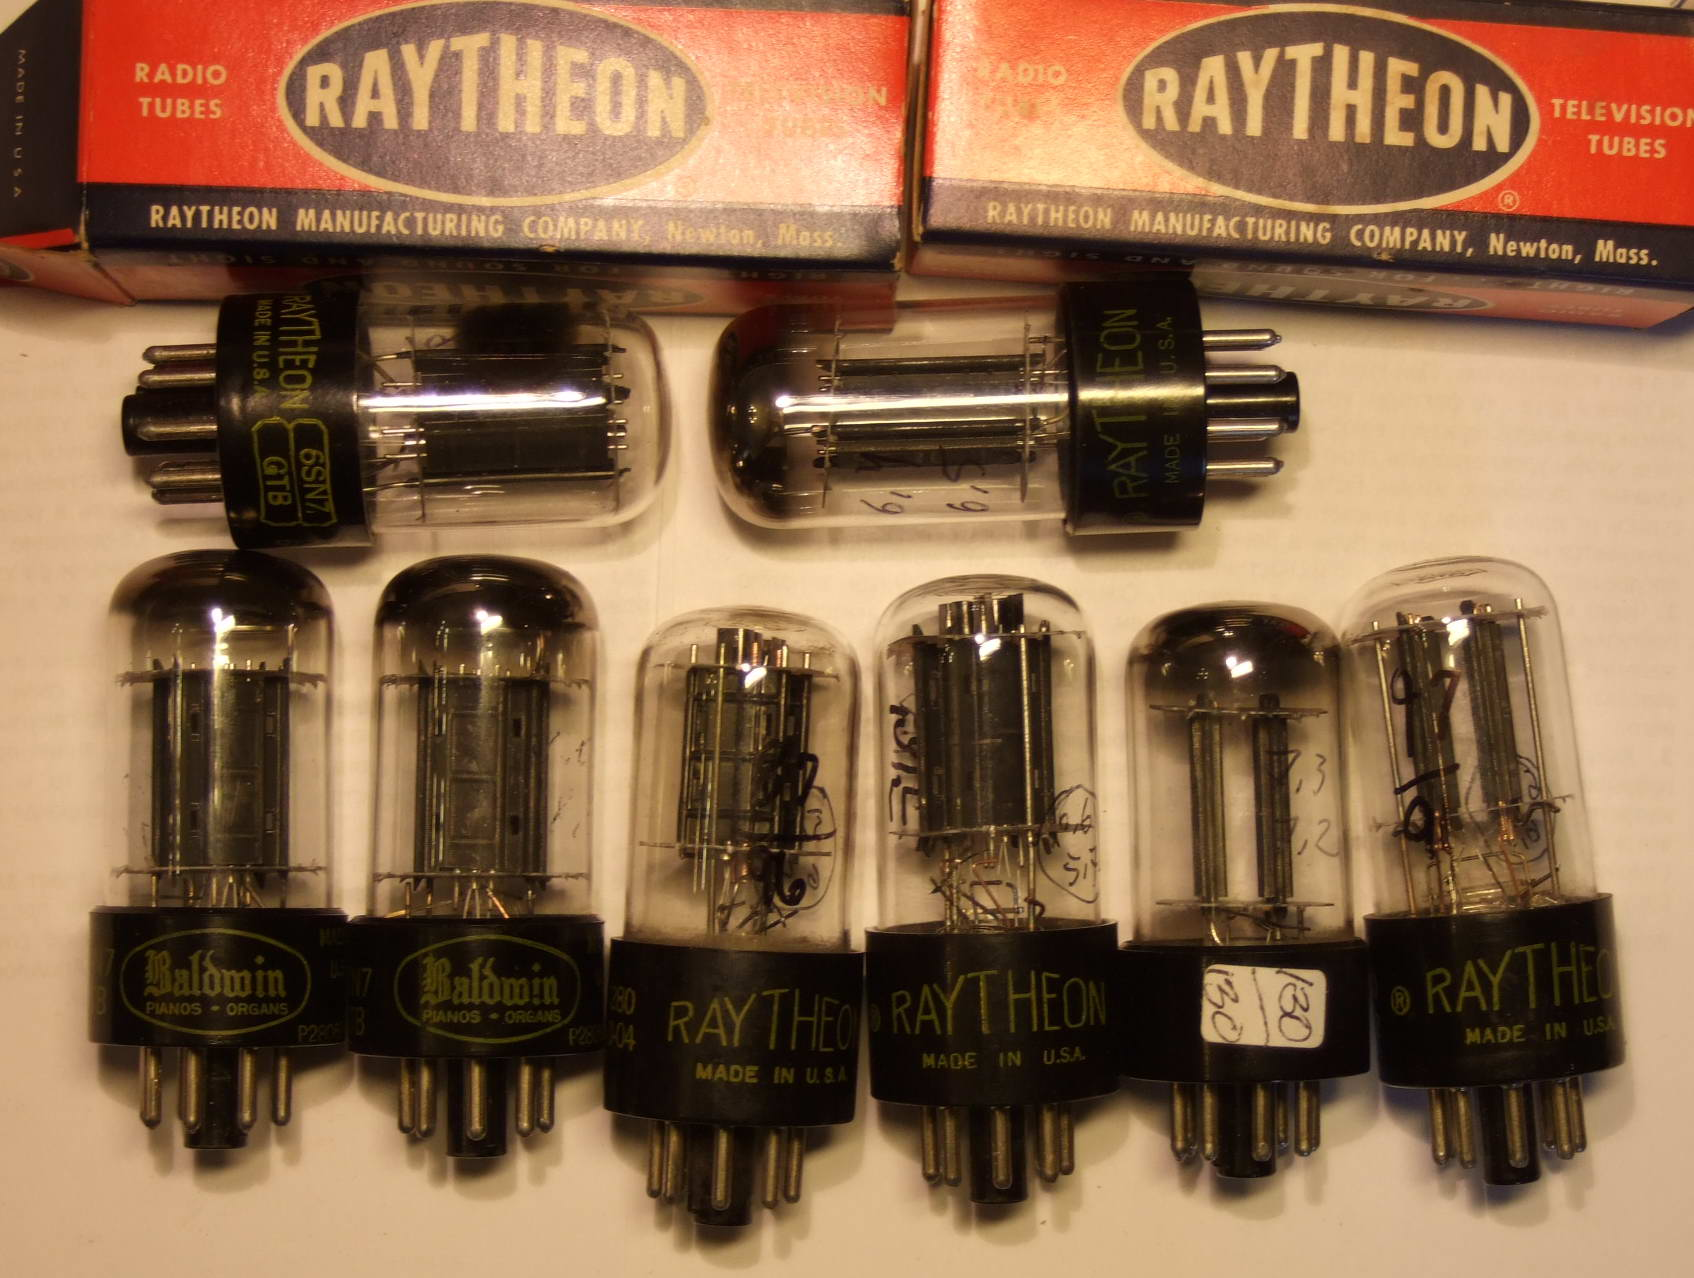 двойной триод 6SN7GTB Raytheon USA NOS Raytheon